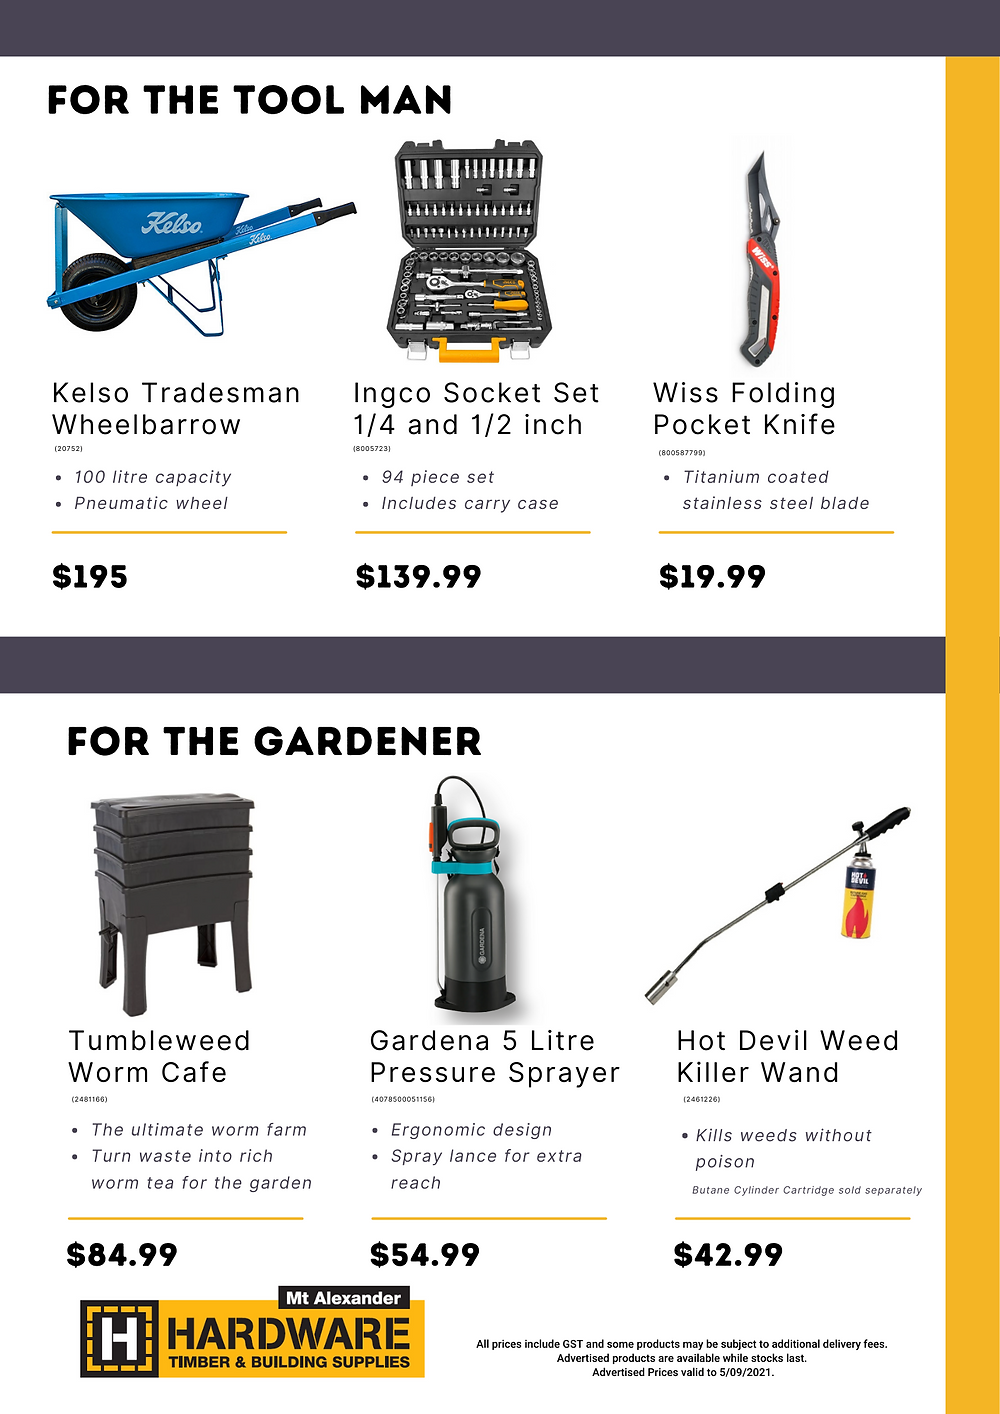 Father's Day Gift Guide 2020 Featuring Makita Line Trimmer, Ingco Multi Function Tool, Hot Devil Weed Killer Wand, Karcher Pressure Washer, Gift Vouchers